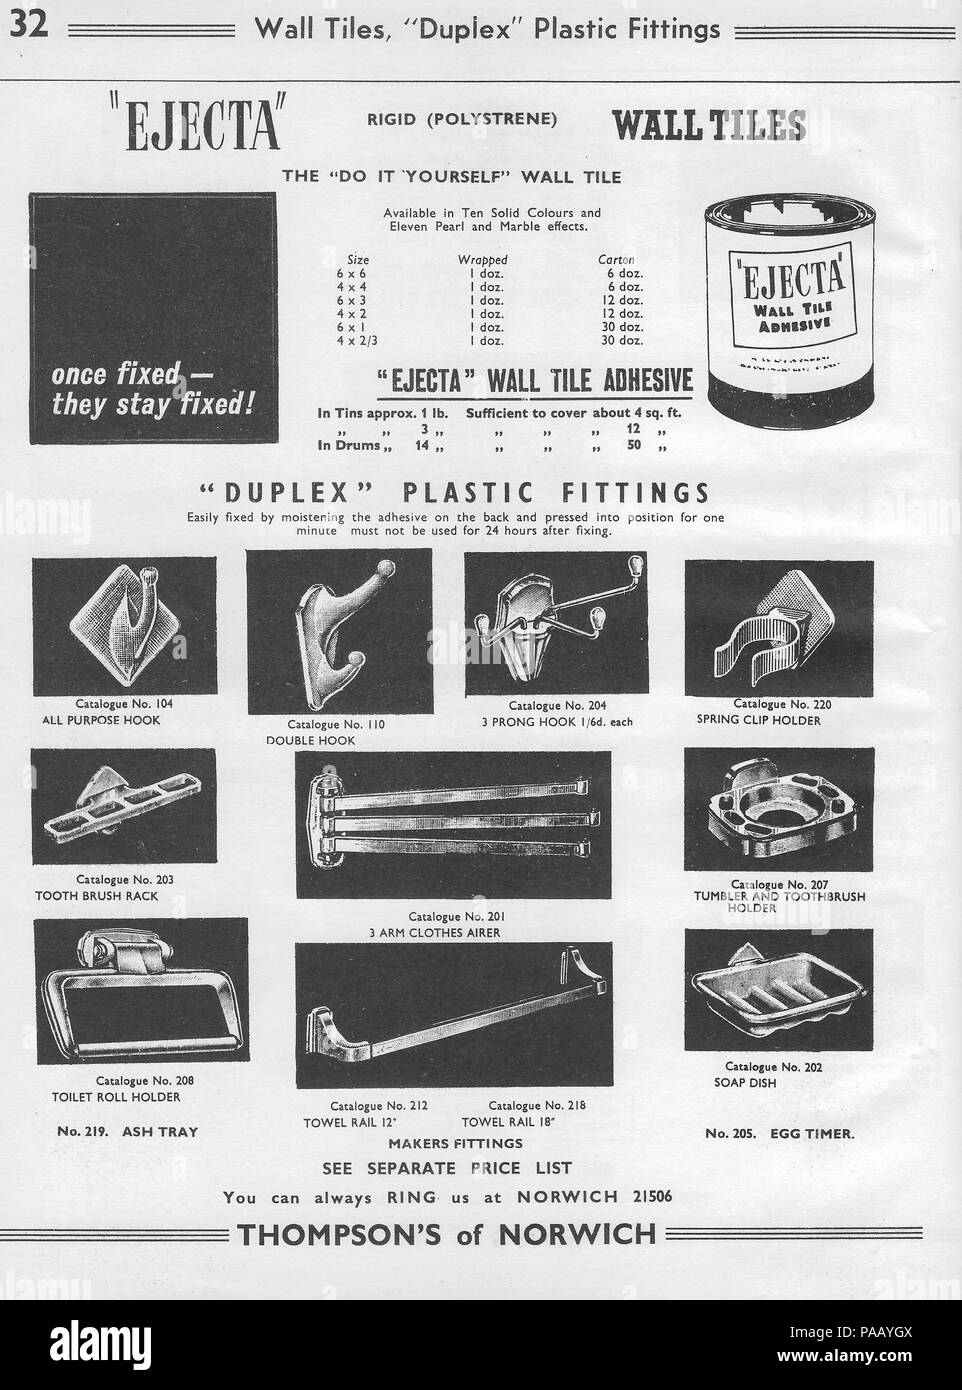 General Wholesale Catalogue Hardware Factors H Thompson Sons Ltd Chalk Hill Works Norwich England UK 1940s 1950s Retro Vintage Household Products